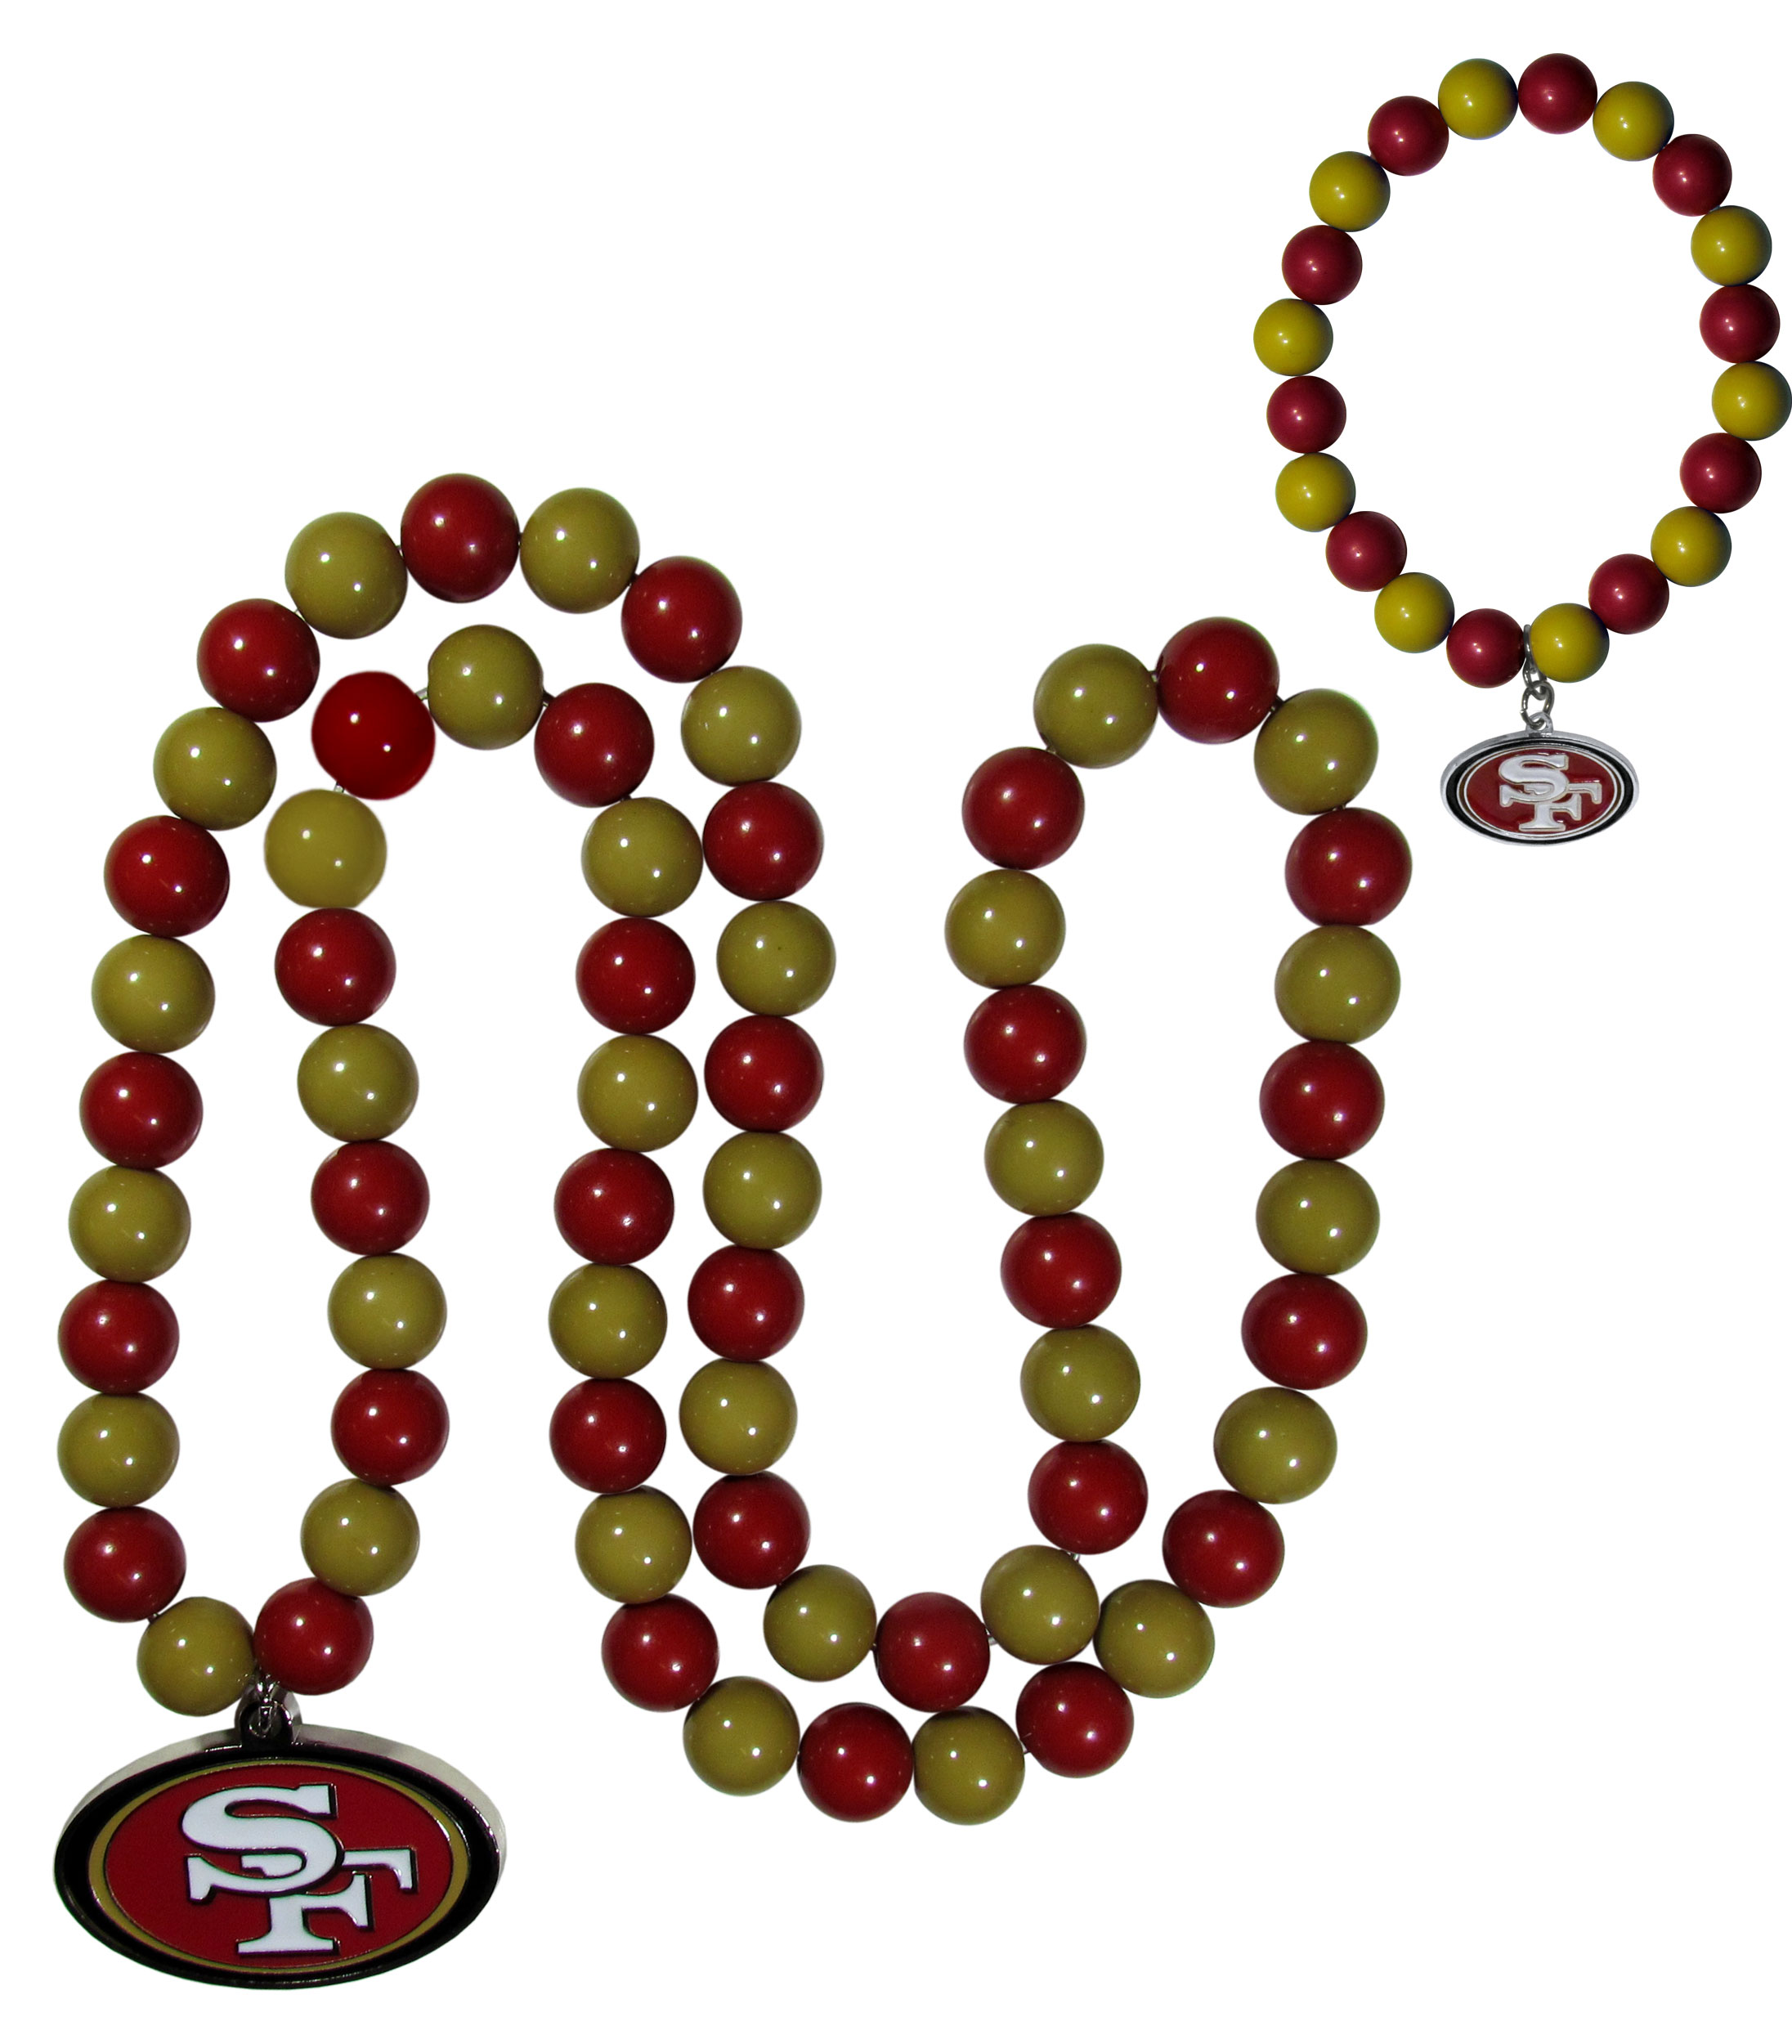 San Francisco 49ers Fan Bead Necklace and Bracelet Set - These fun and colorful San Francisco 49ers fan bead jewelry pieces are an eyecatching way to show off your team spirit. The striking necklace is a 24 inch string of alternating team colored beads with a large team pendant. The mathcing bracelet has alternating team colored beads on a stretch cord and features a matching team charm.